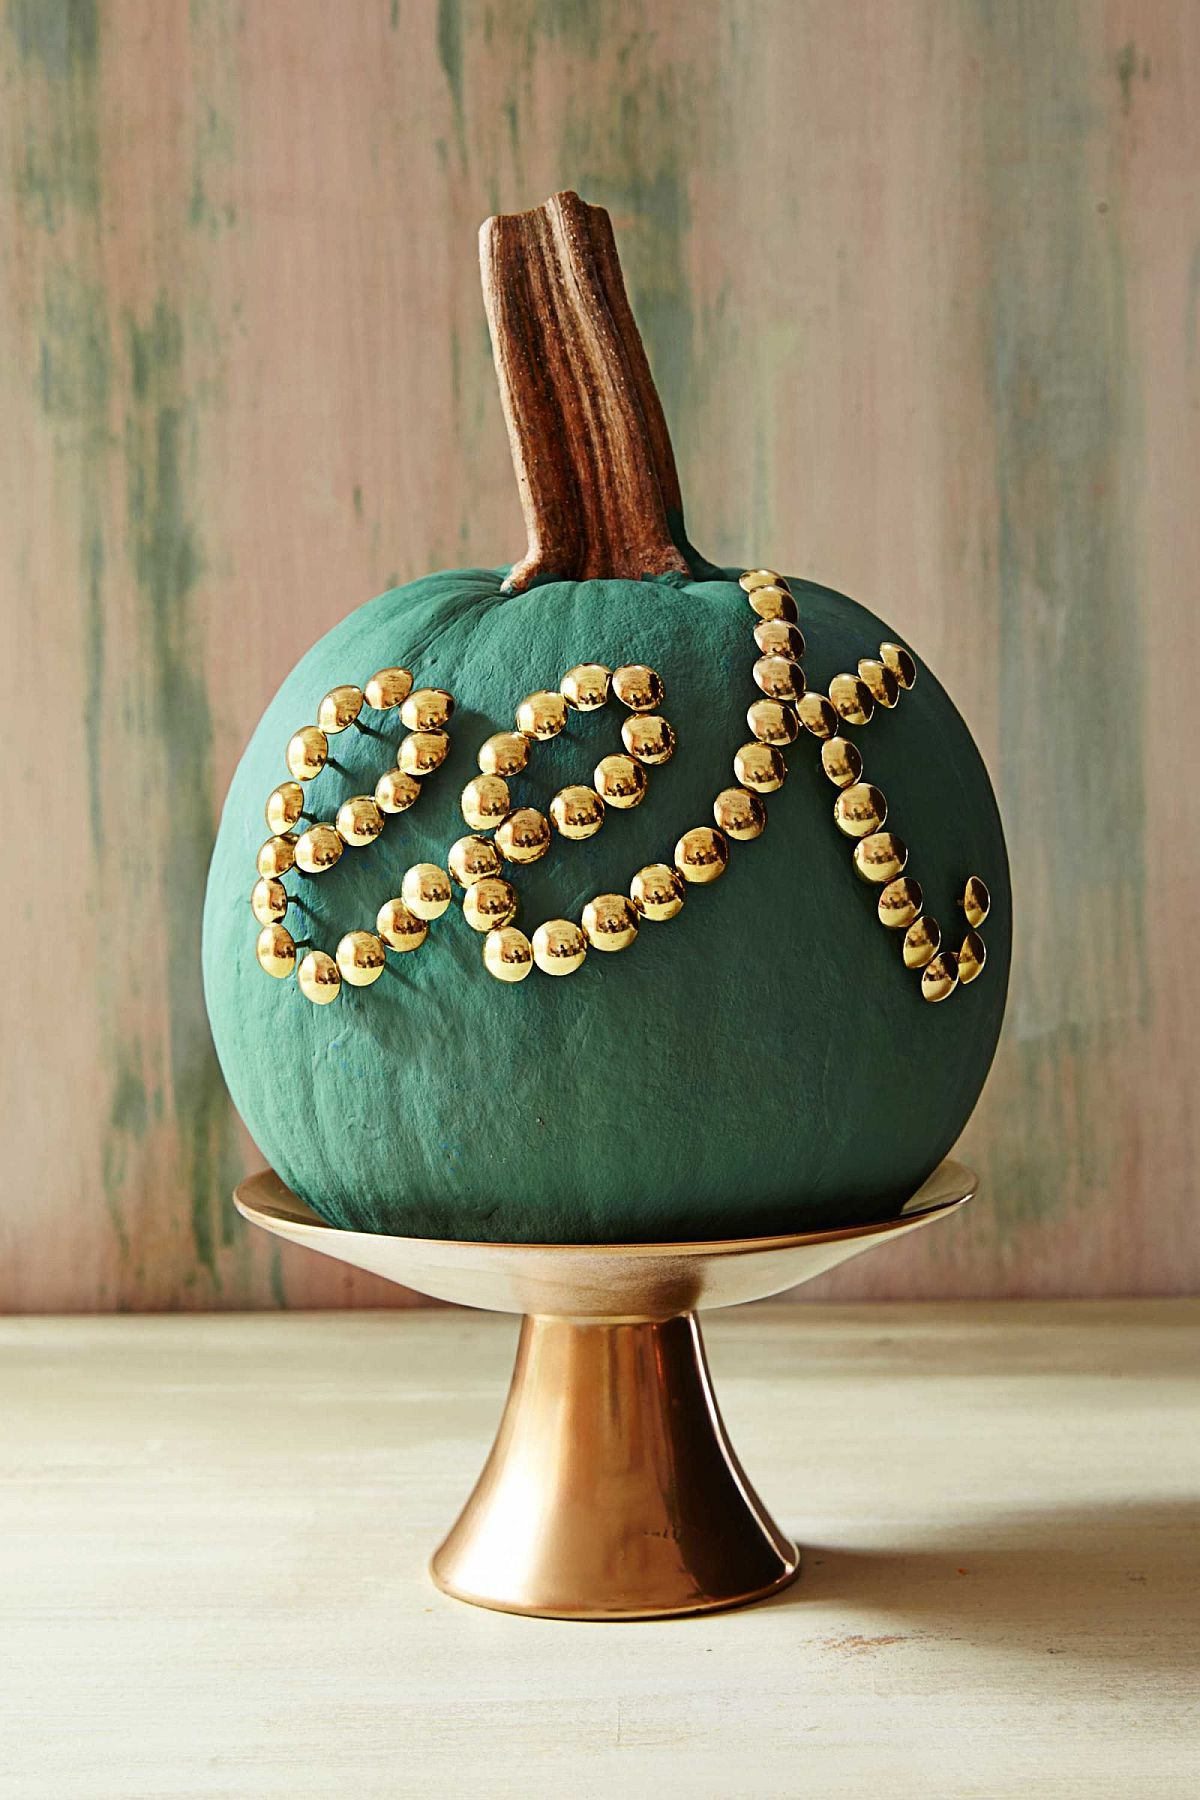 Pumpkin that spells out Eek feels both stylish and eclectic